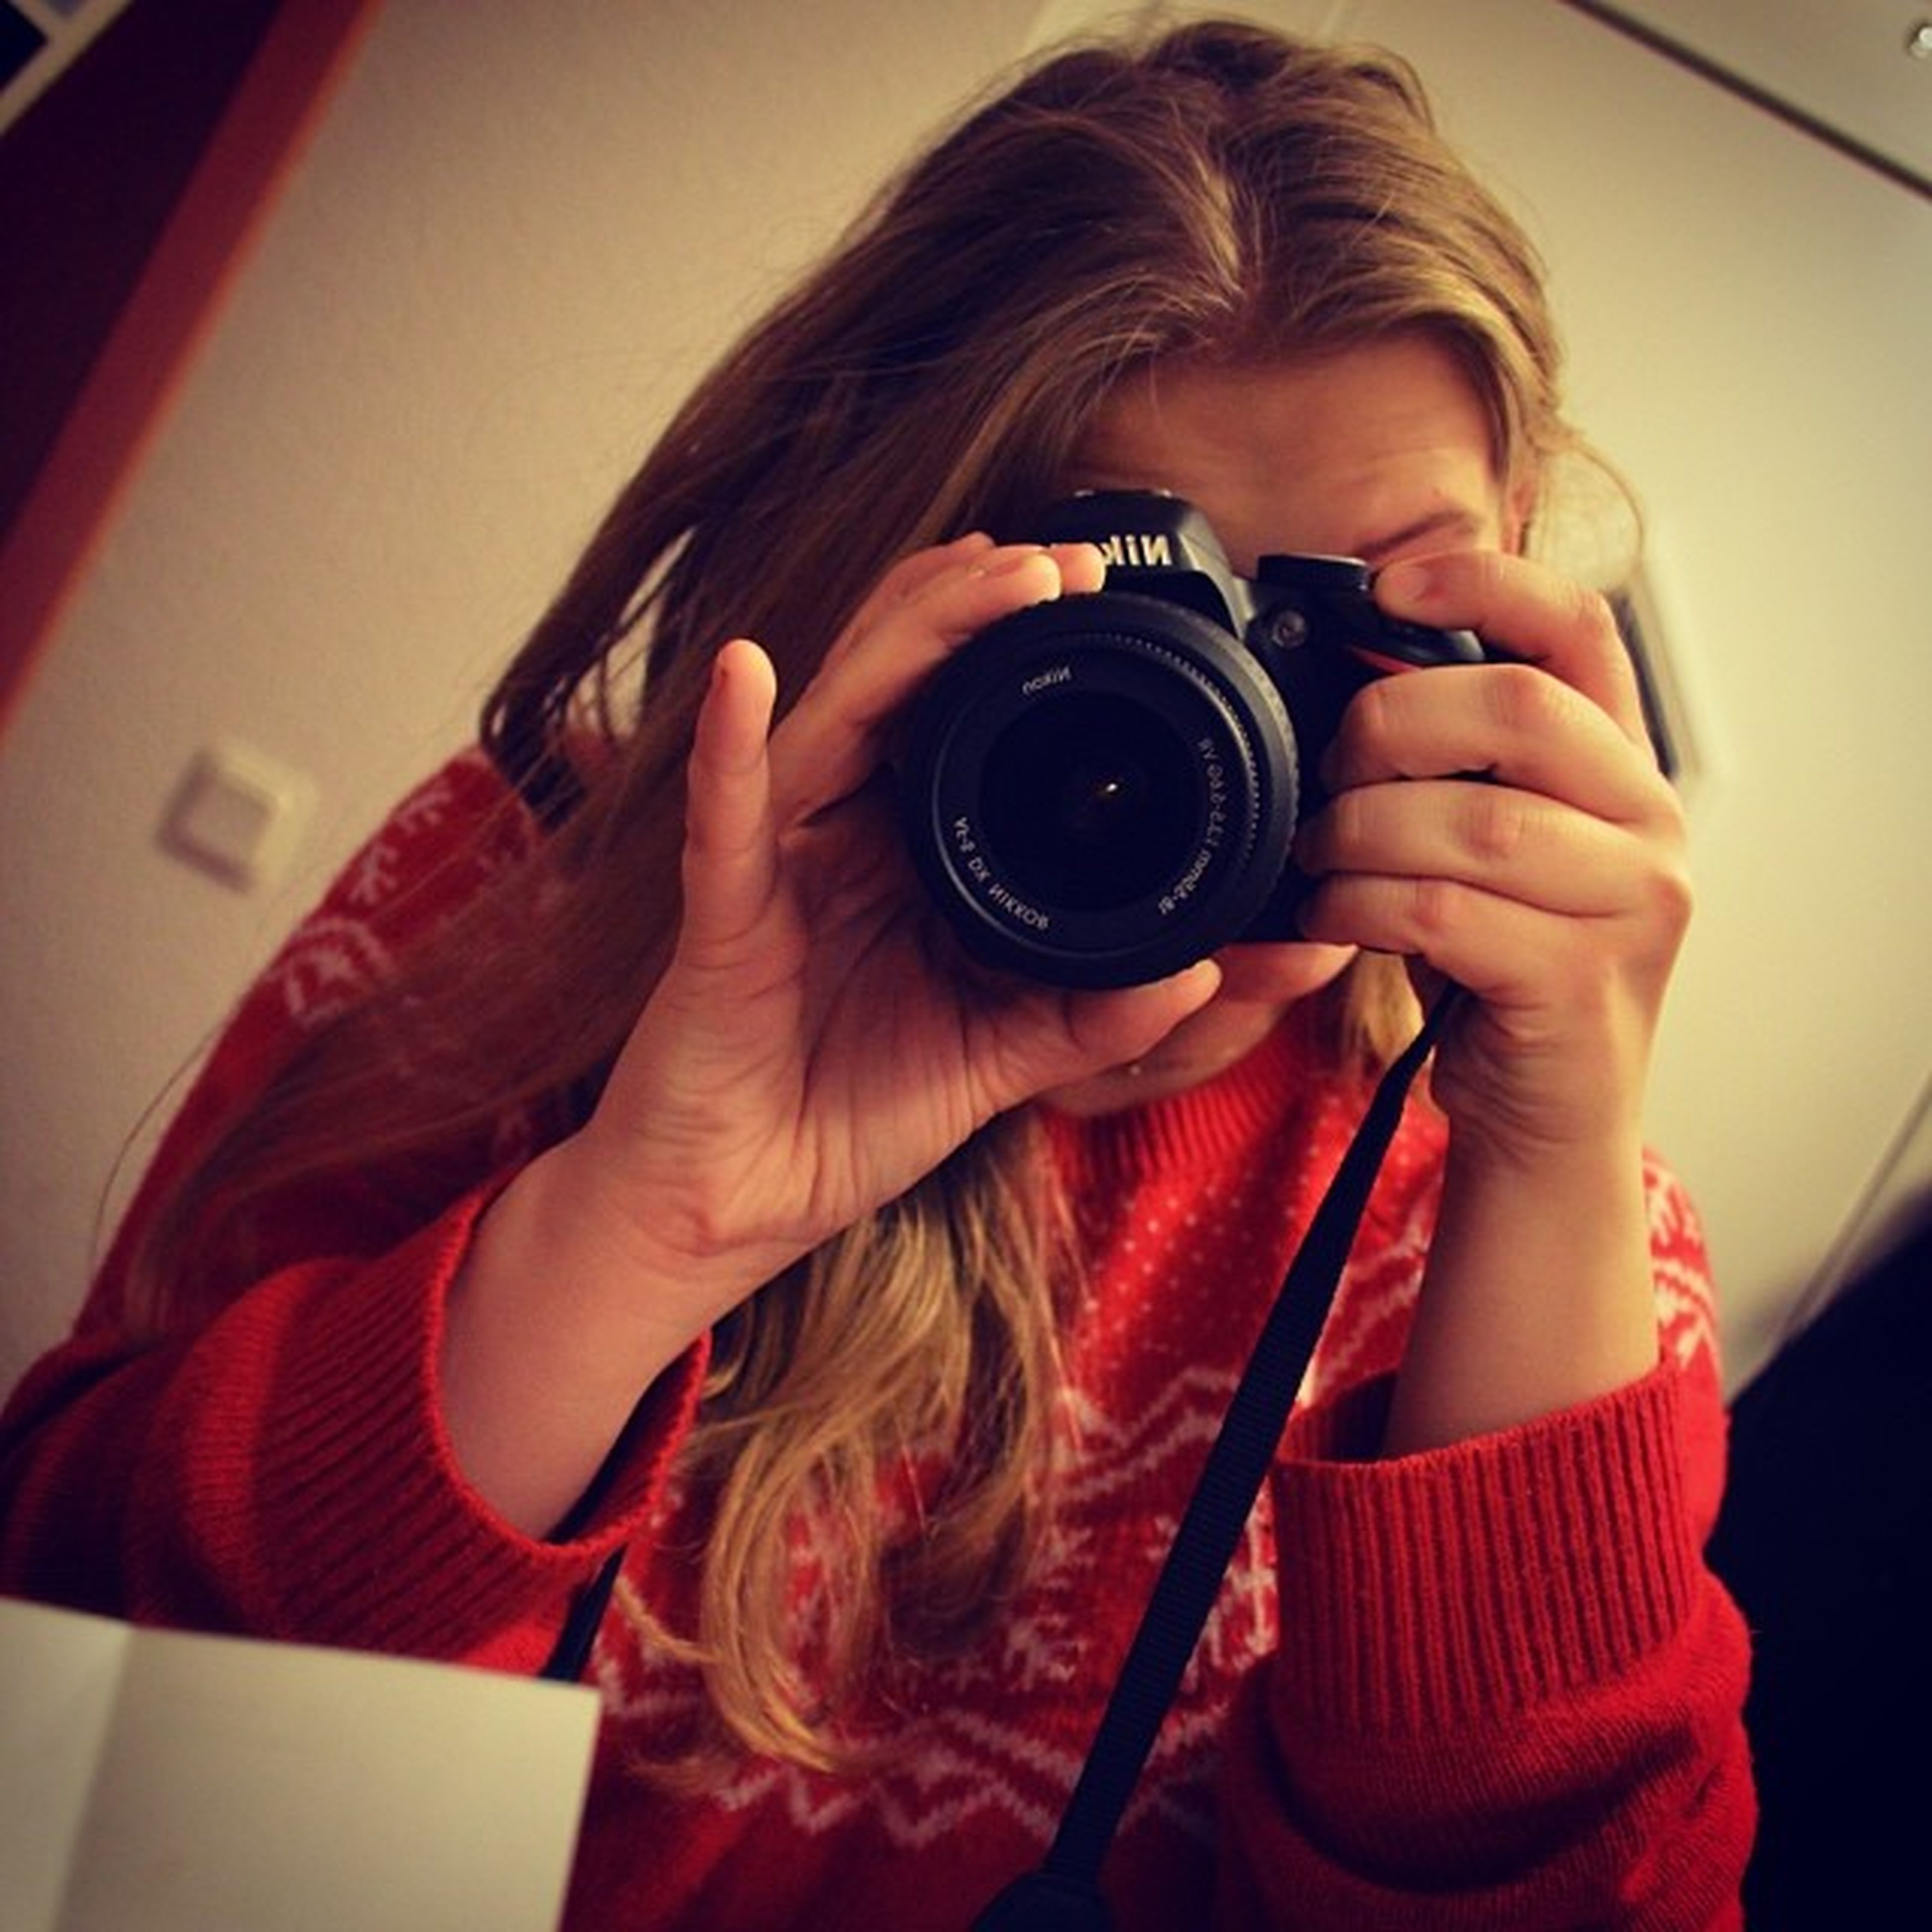 Jeden Tag <3 Unser2014 Camera Nikon Tag unserwinter ich photooftheday pauline day funny fun girl germangirl hair großeliebe like like4like bestoftheday music me 2014